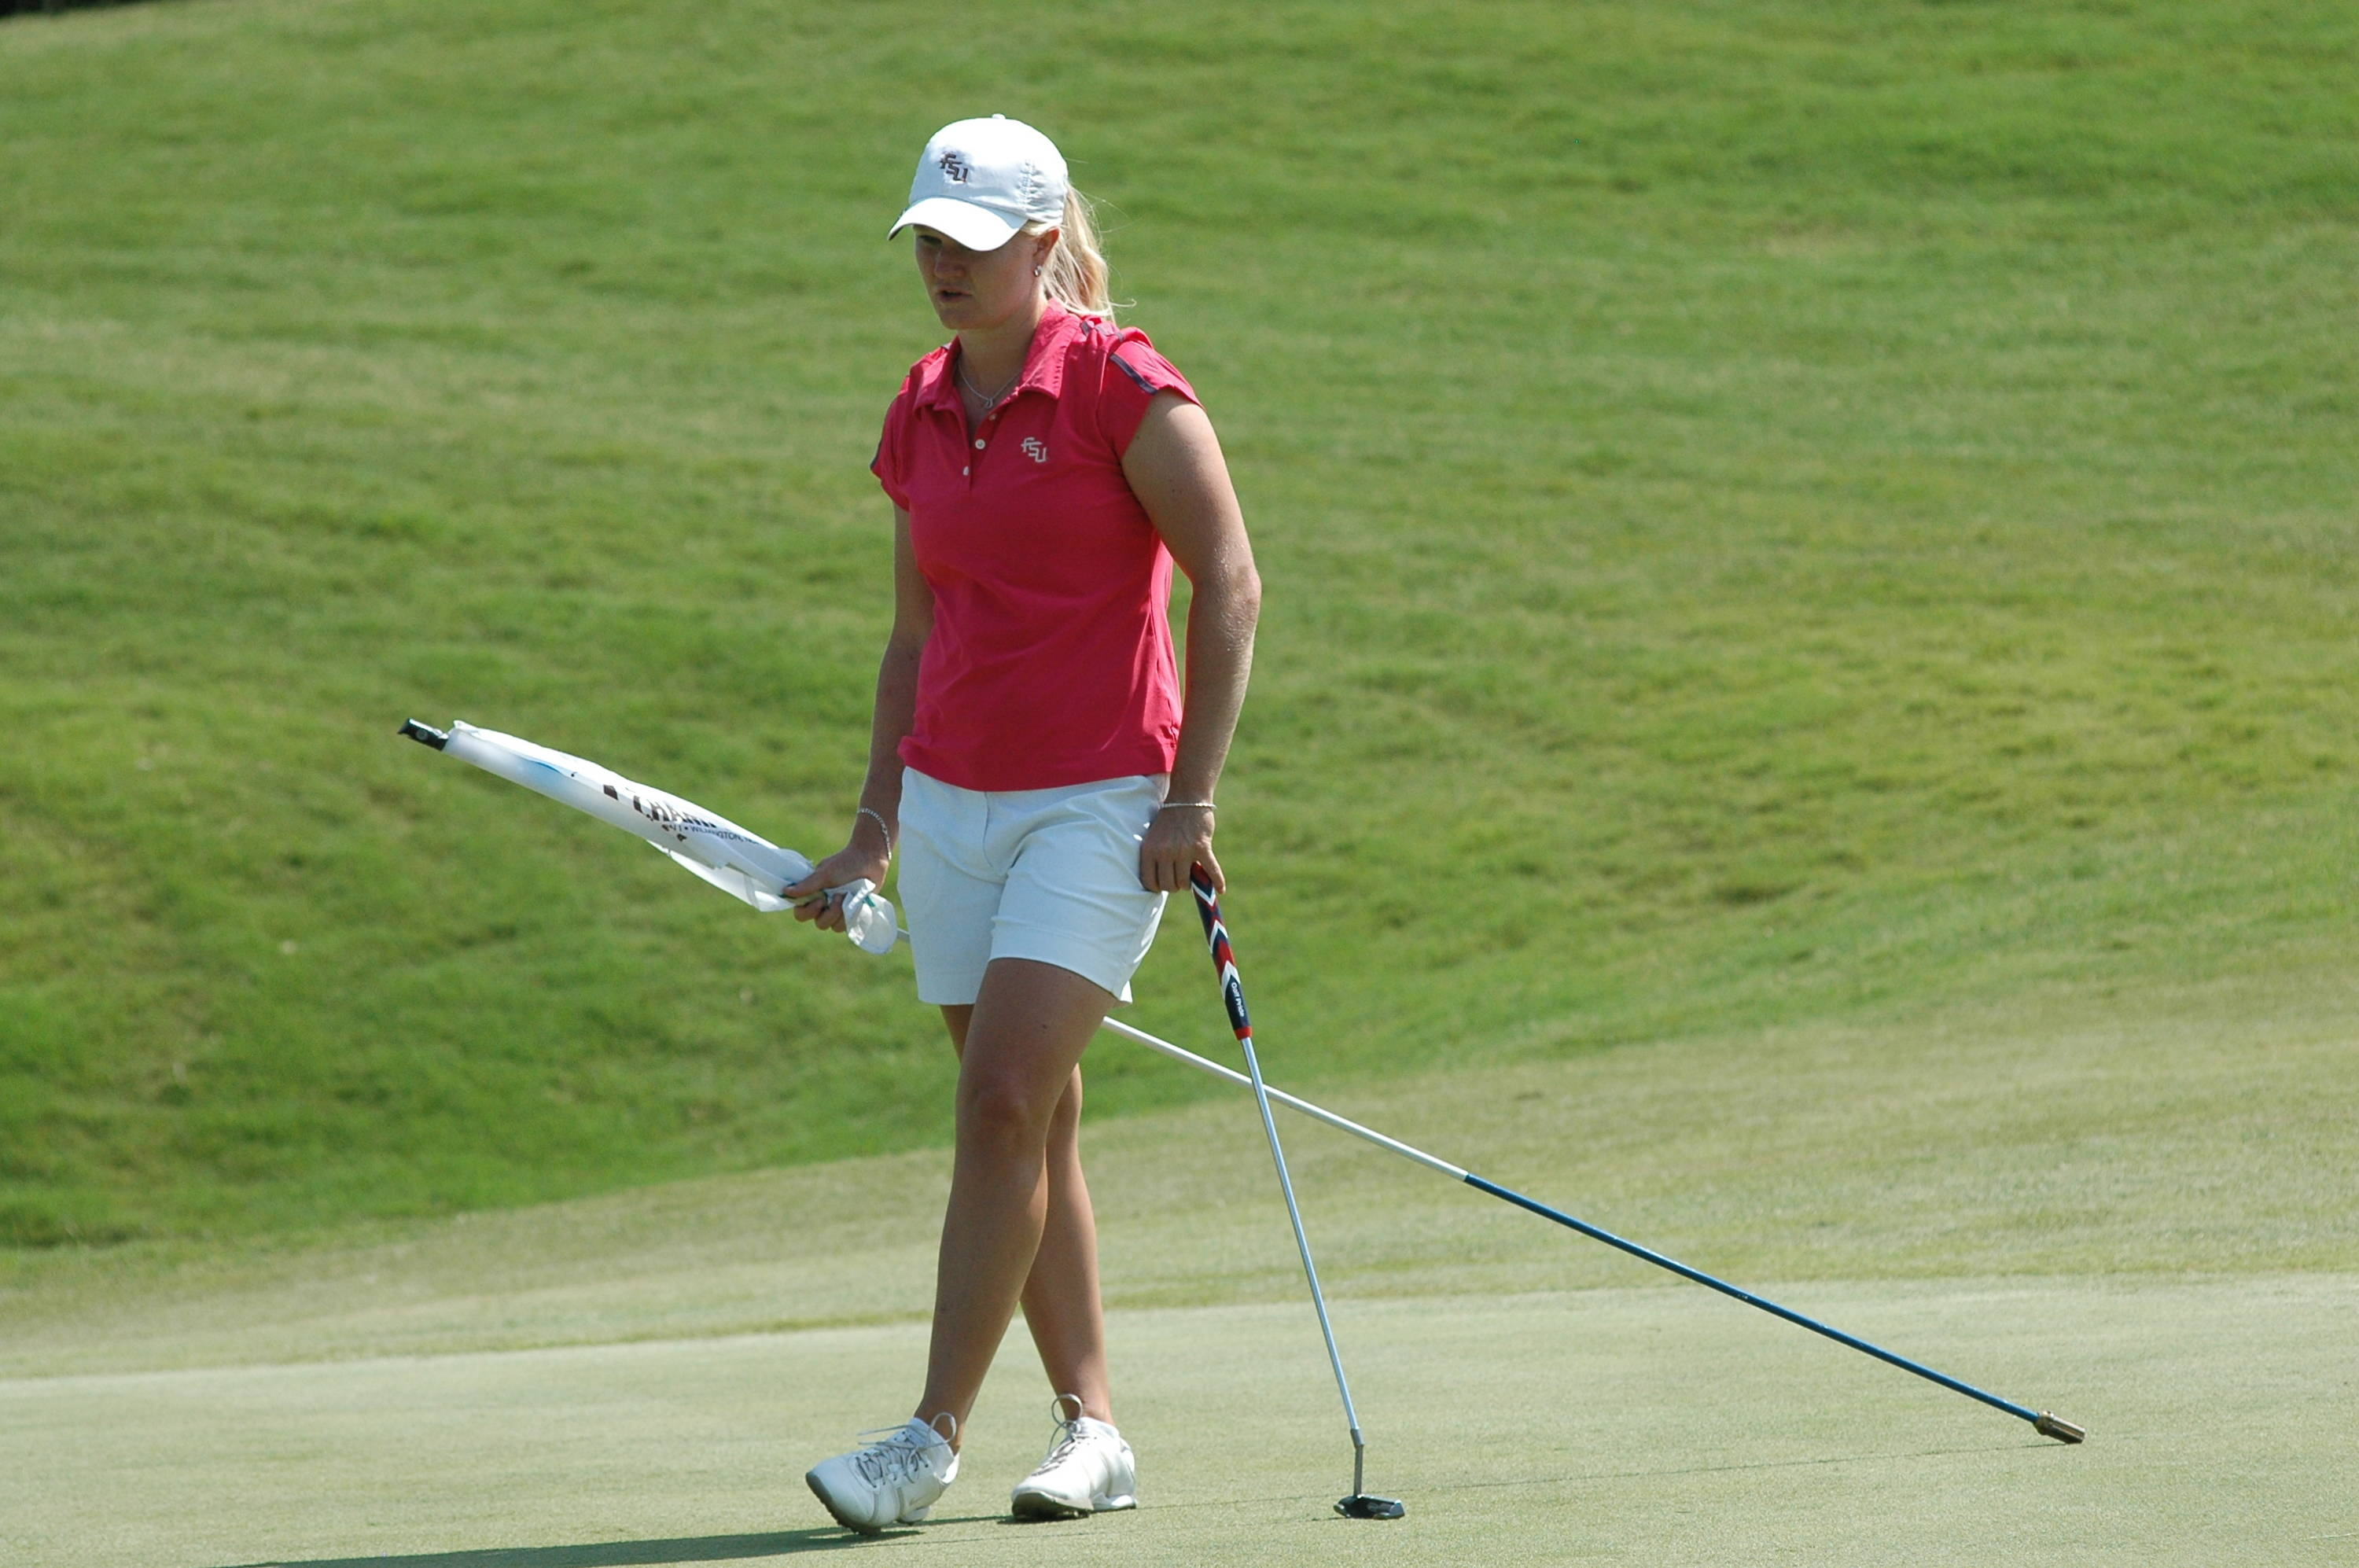 Hannah Thomson - NCAA Women's Golf 2010 Day 4